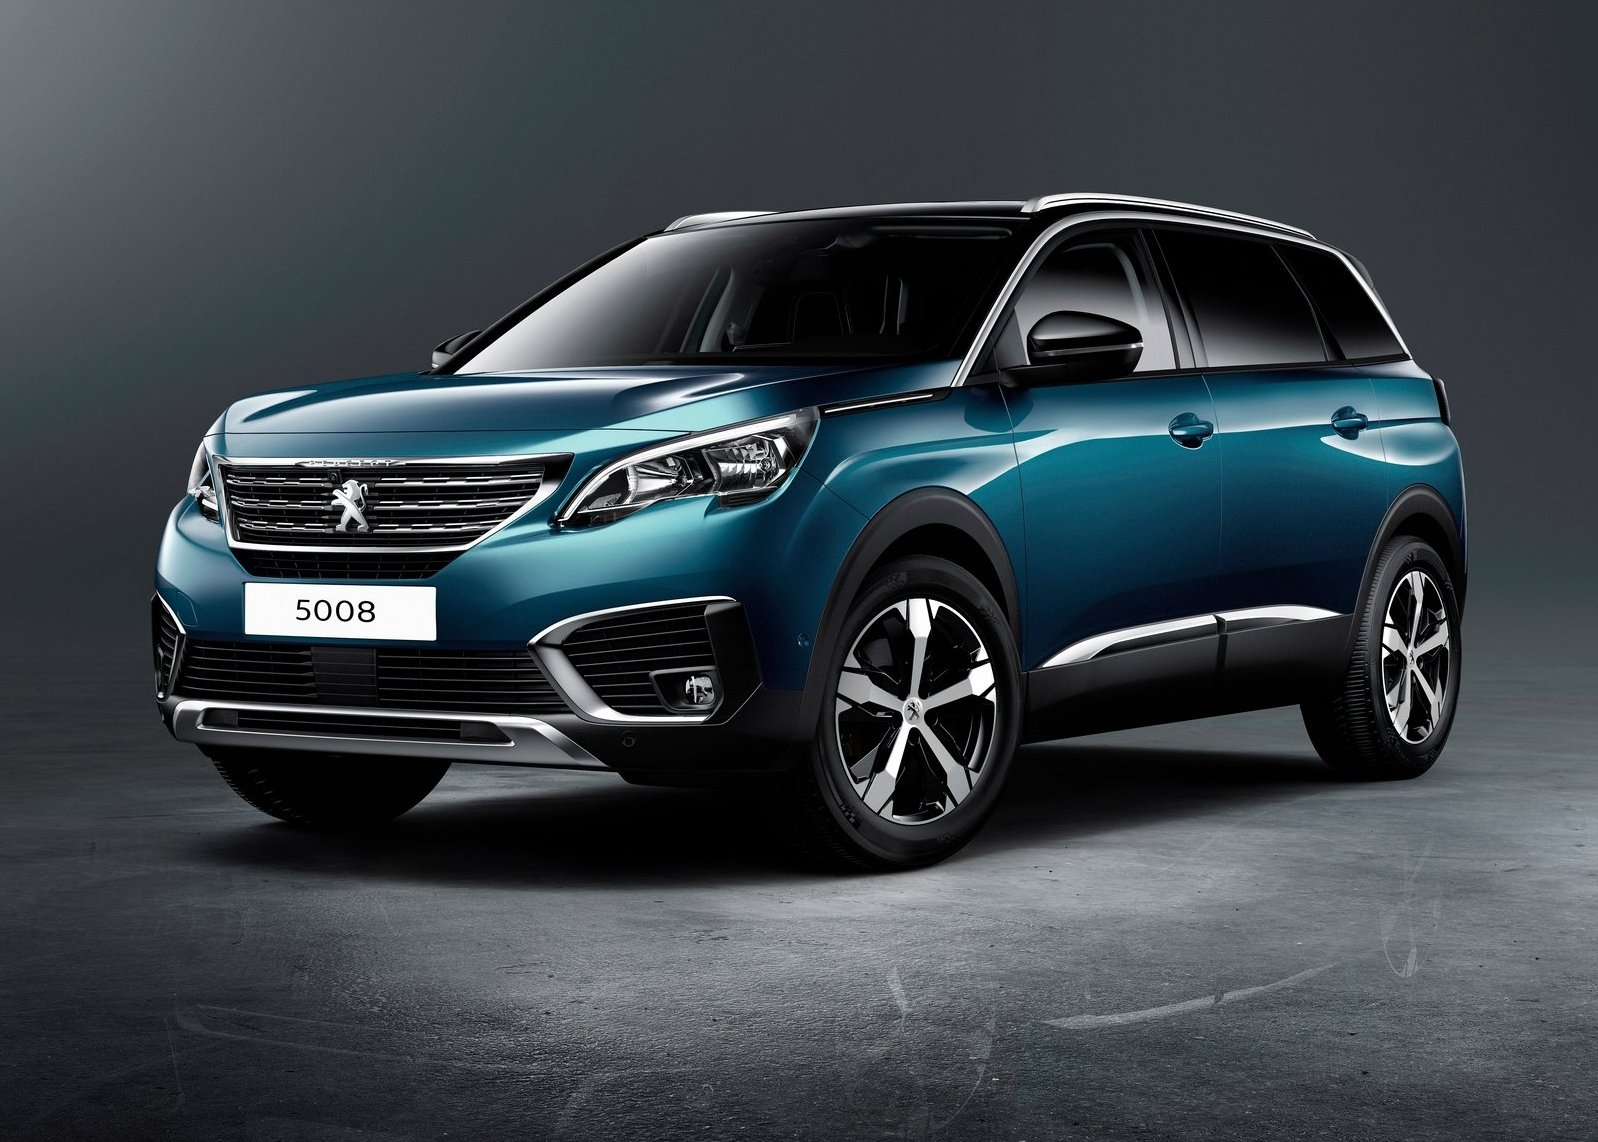 2017 Peugeot 5008 Front angle